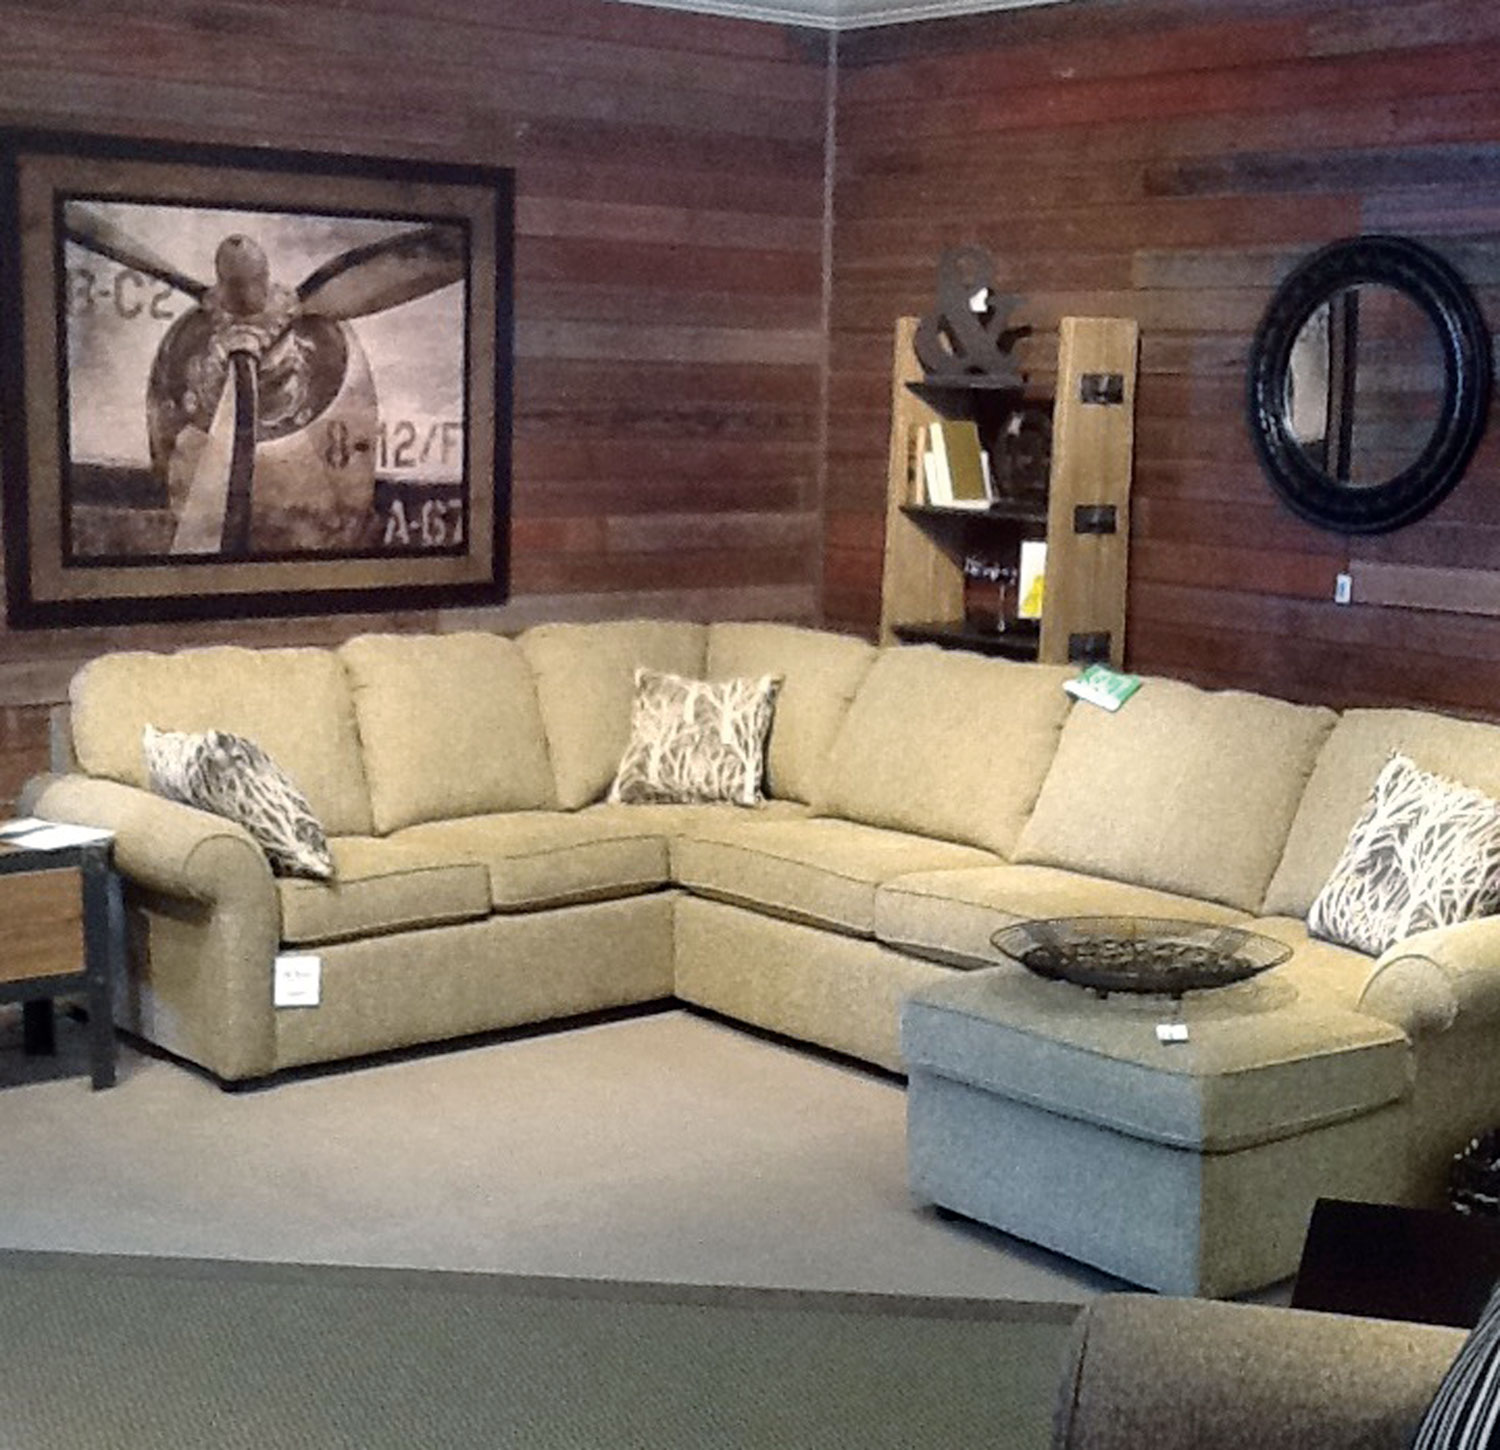 England Upholstery Gets Prominent Display In A Gallery Within The Watertown  Store.